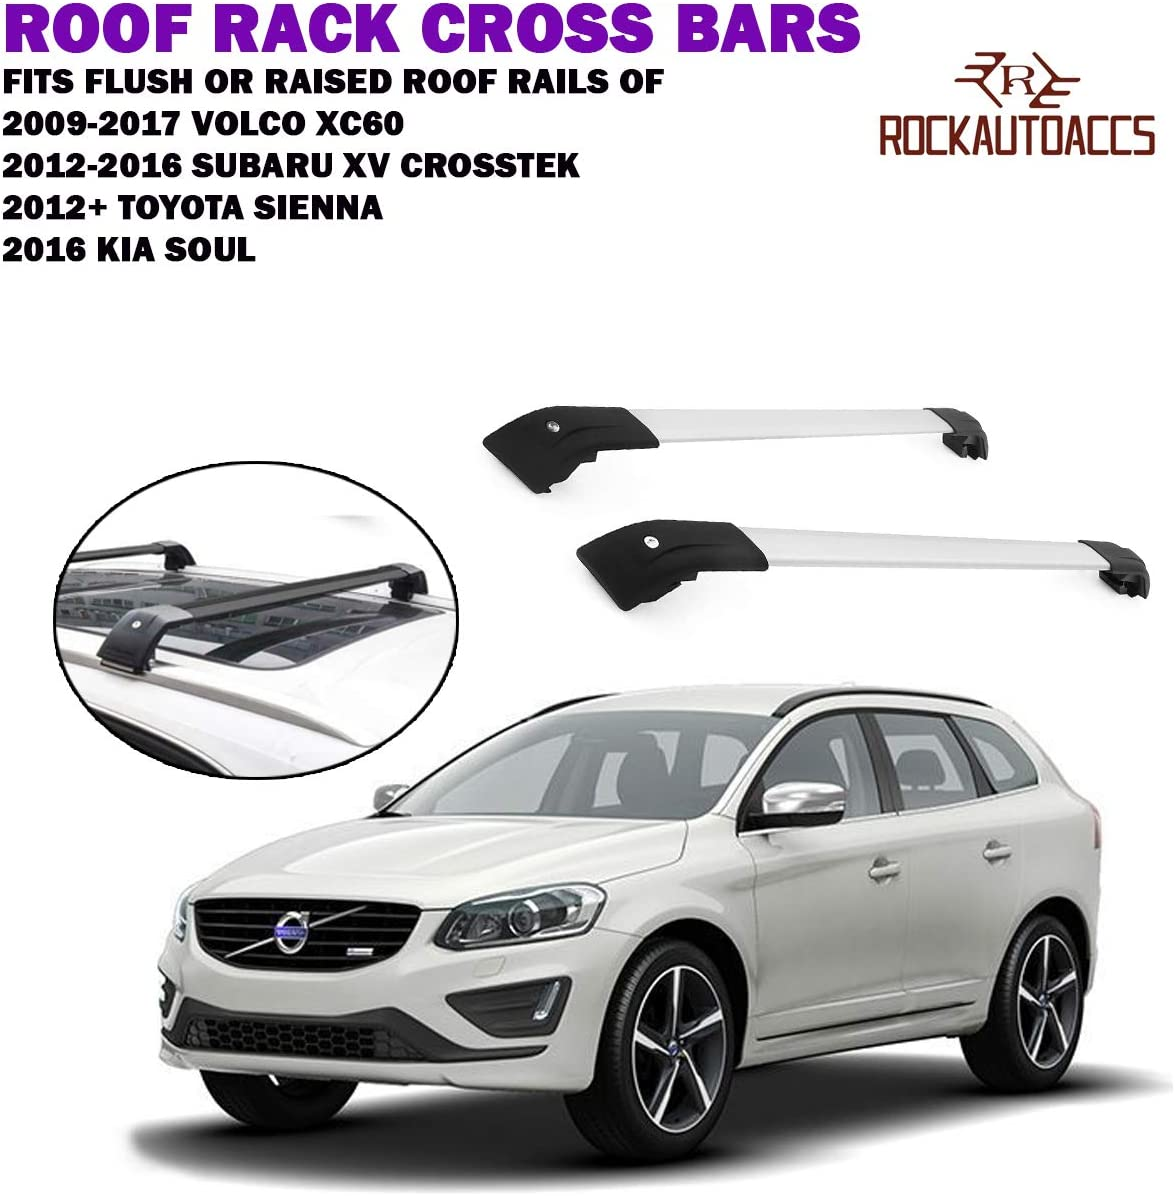 ROKIOTOEX Universal Roof Rack Cross Bars Rooftop Crossbar SUV with Factory Roof Rack Side Rails One Bar Only 95, Black